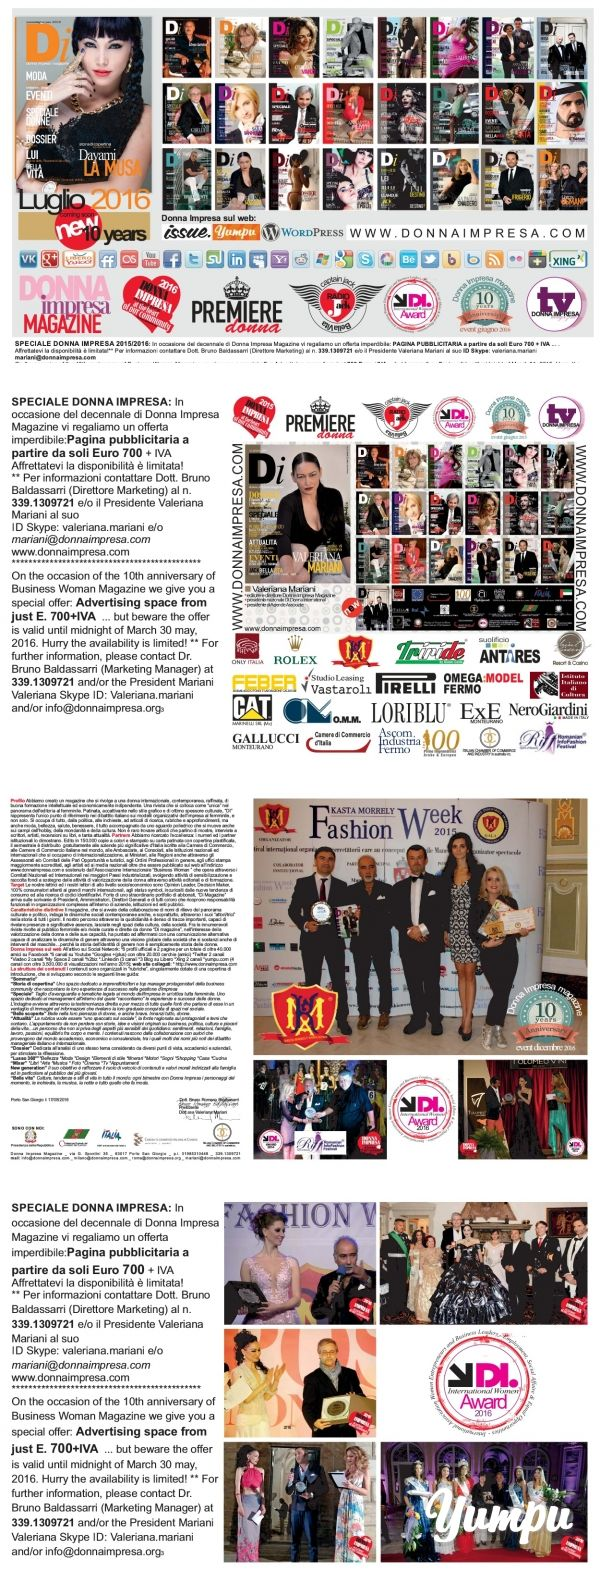 DONNA IMPRESA magazine 2016 - Magazine with 4 pages: